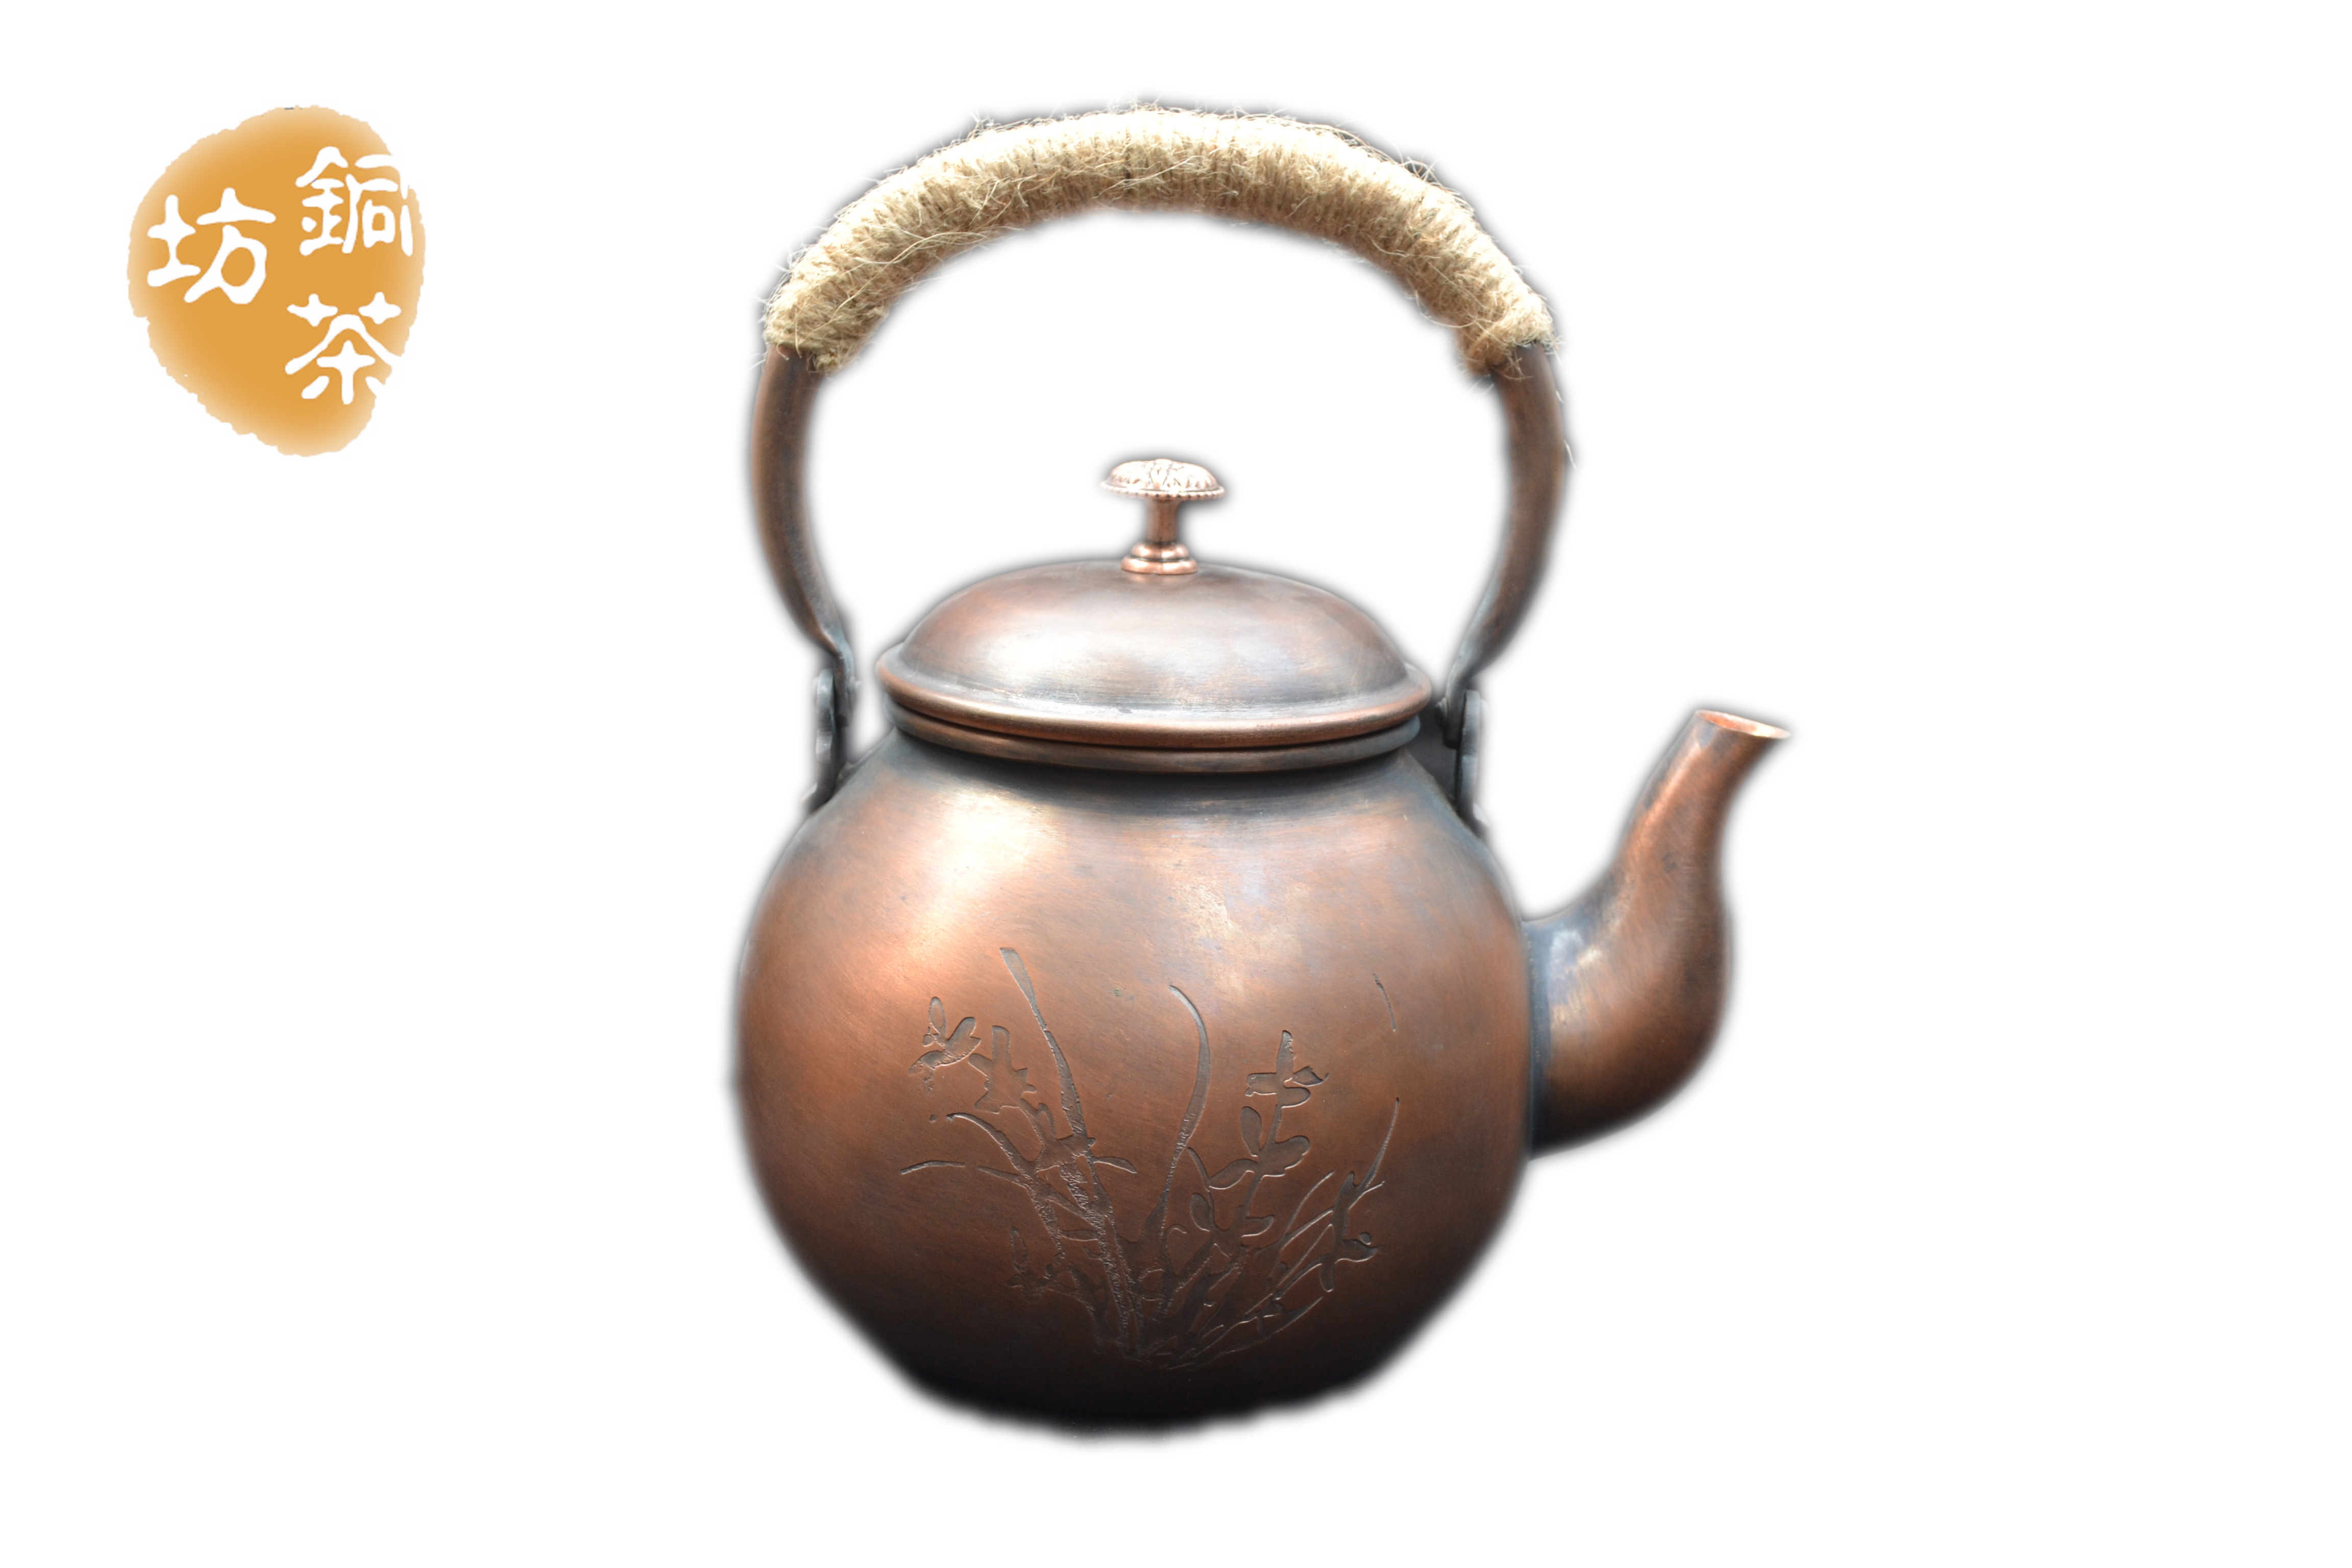 Copper Kettle Antique Plum Blossom Whistling Kettle Blossom Japanese Style Water Kettles